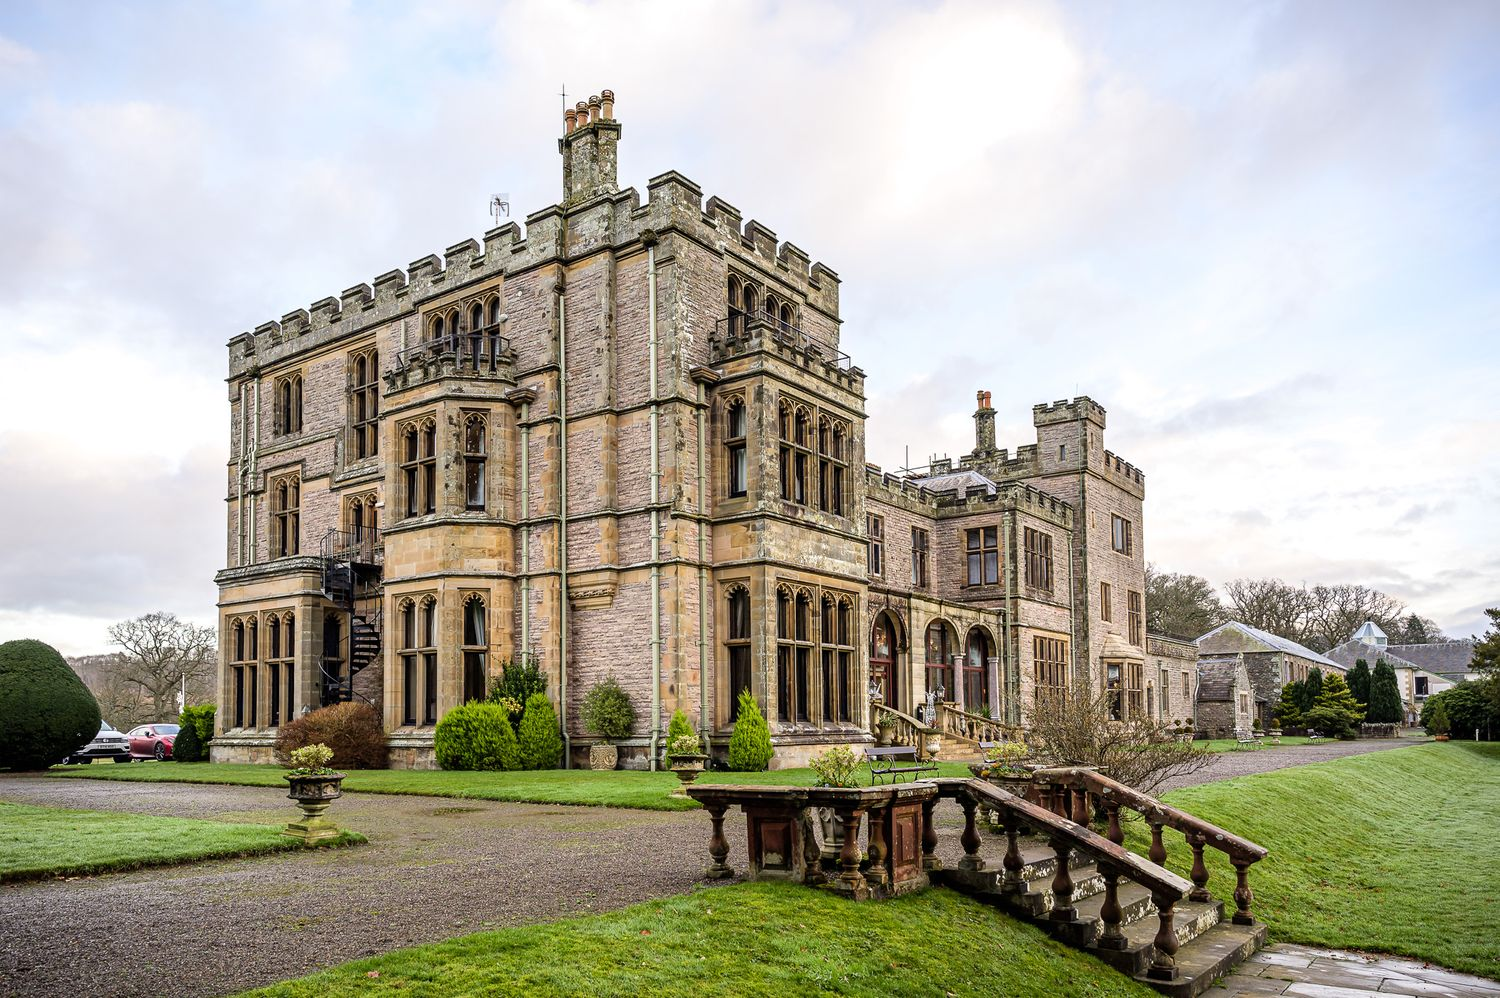 Armathwaite Hall on the shores of Bassenthwaite Lake in Cumbria